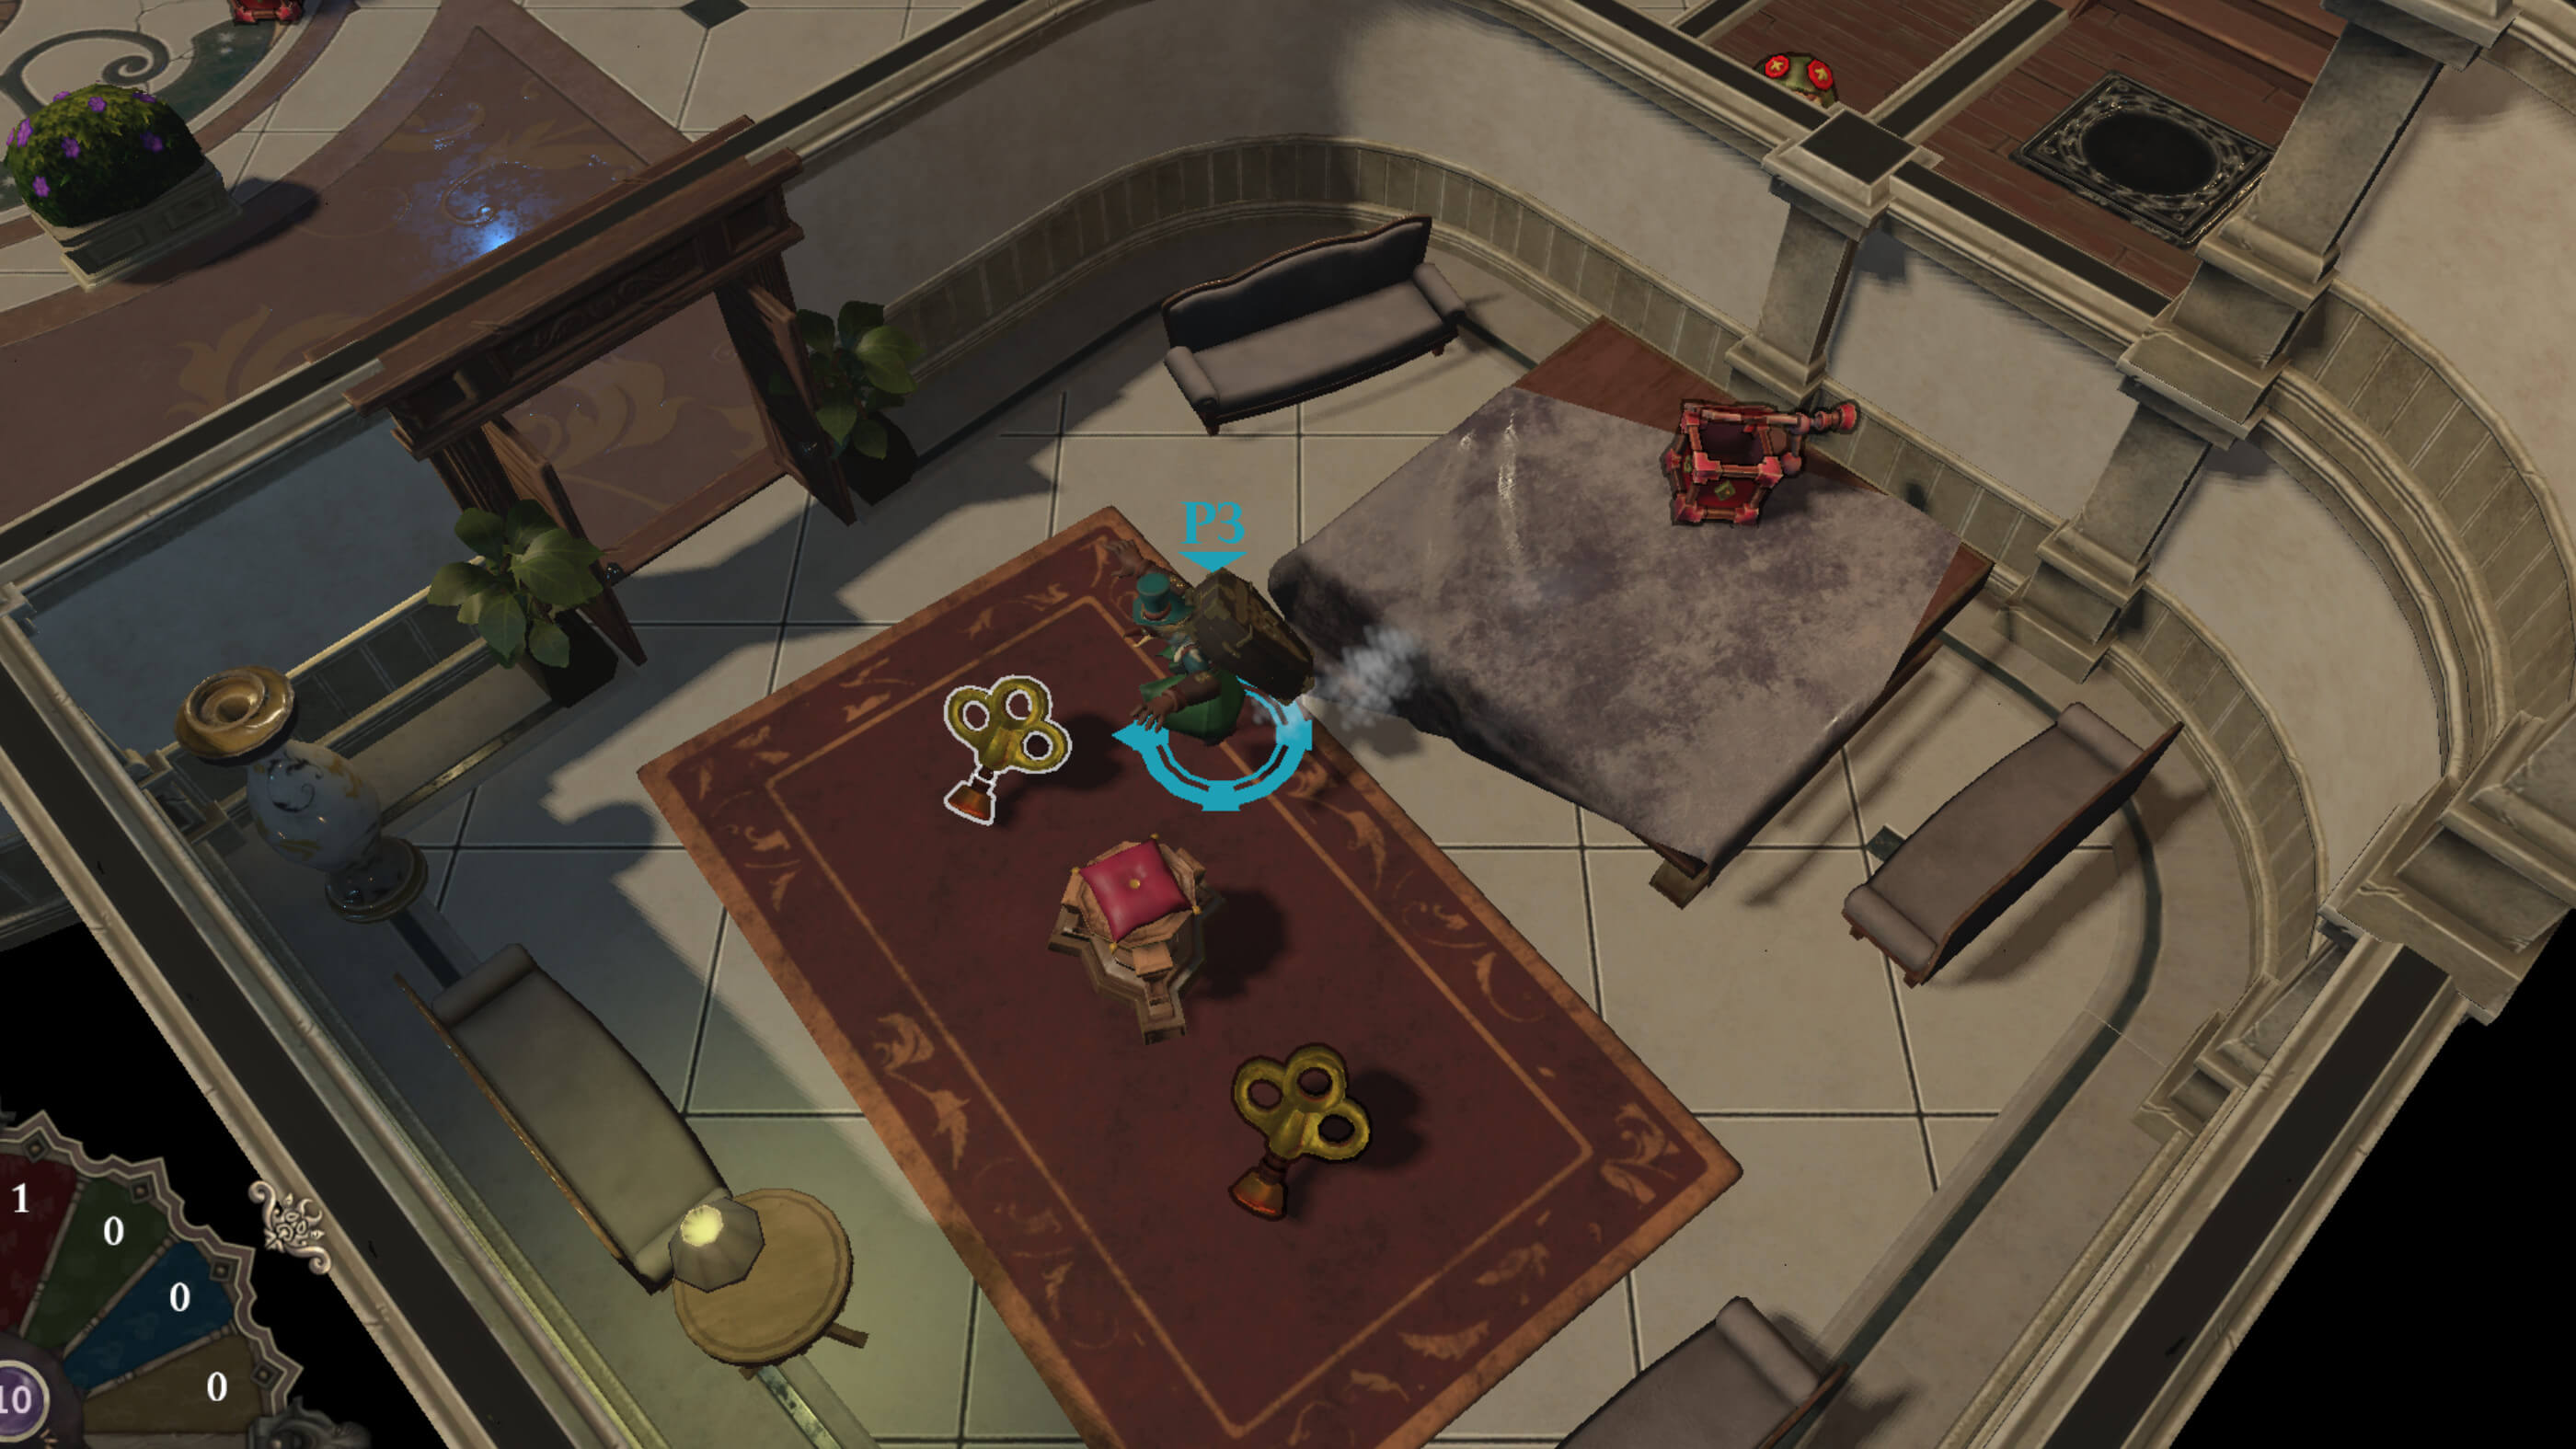 Top-down view of player running to collect an item in a small room